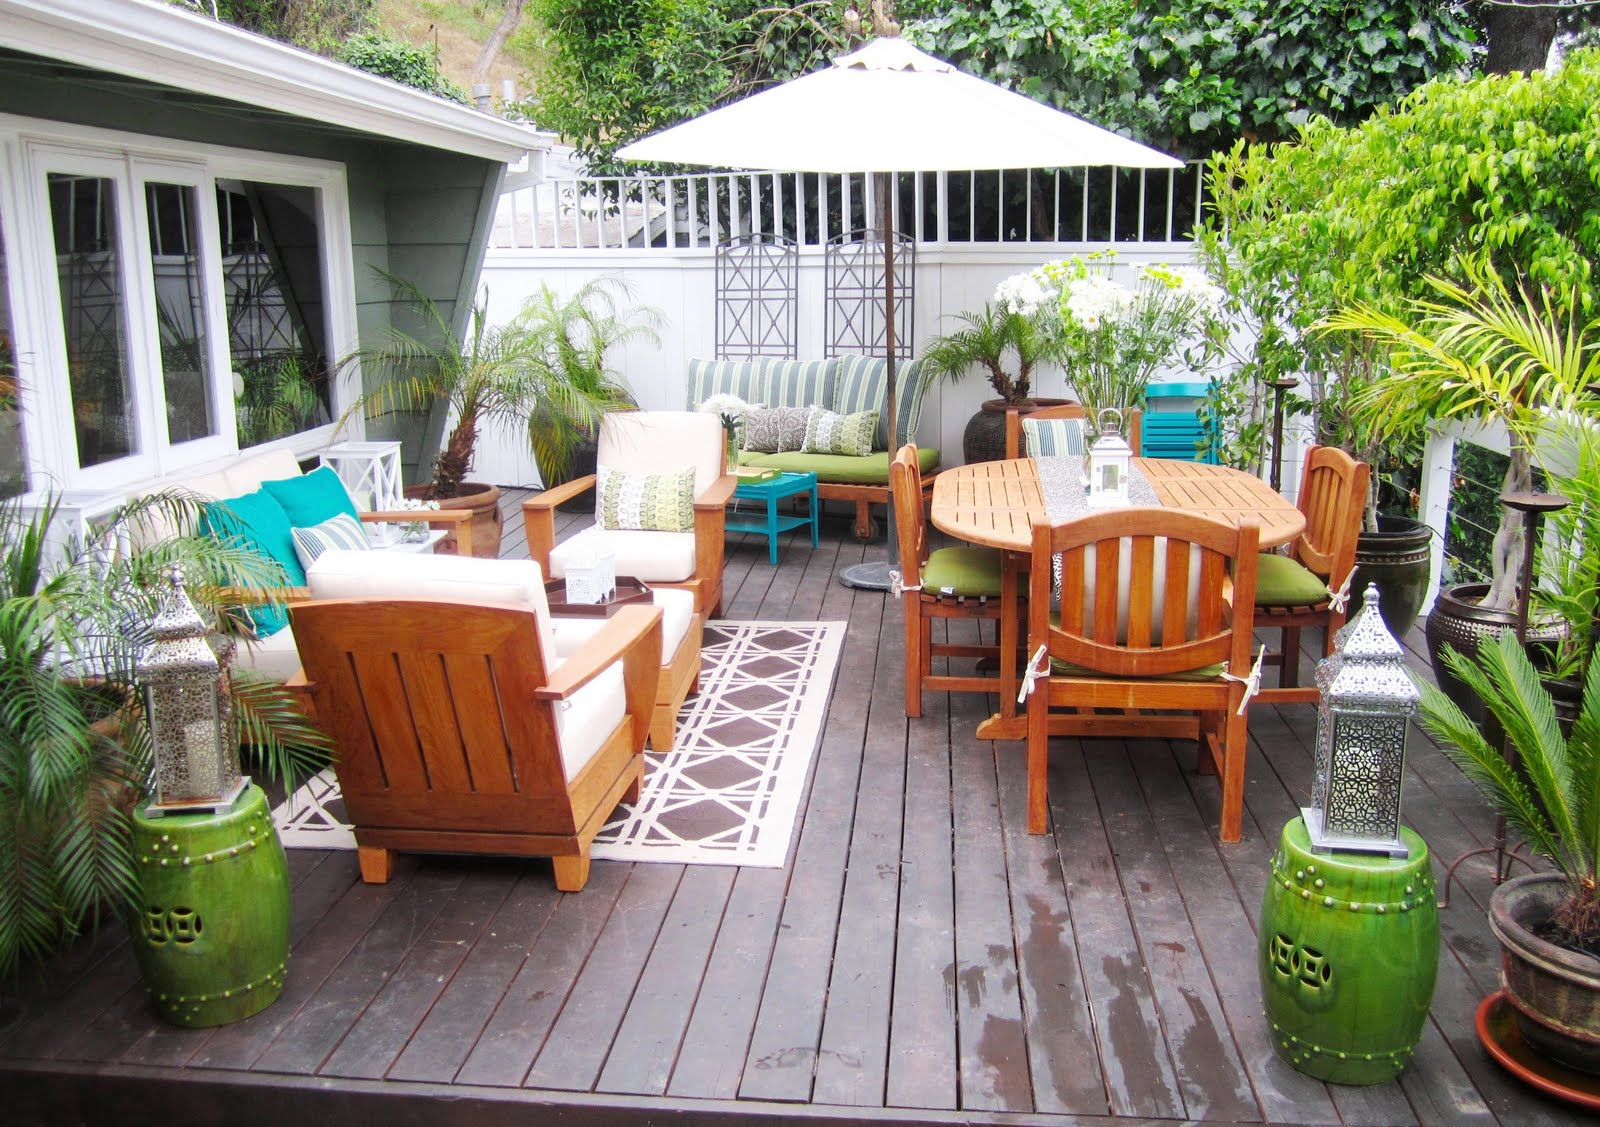 Deck and porch decorating ideas rustic crafts chic decor - Decorating a small deck ideas ...